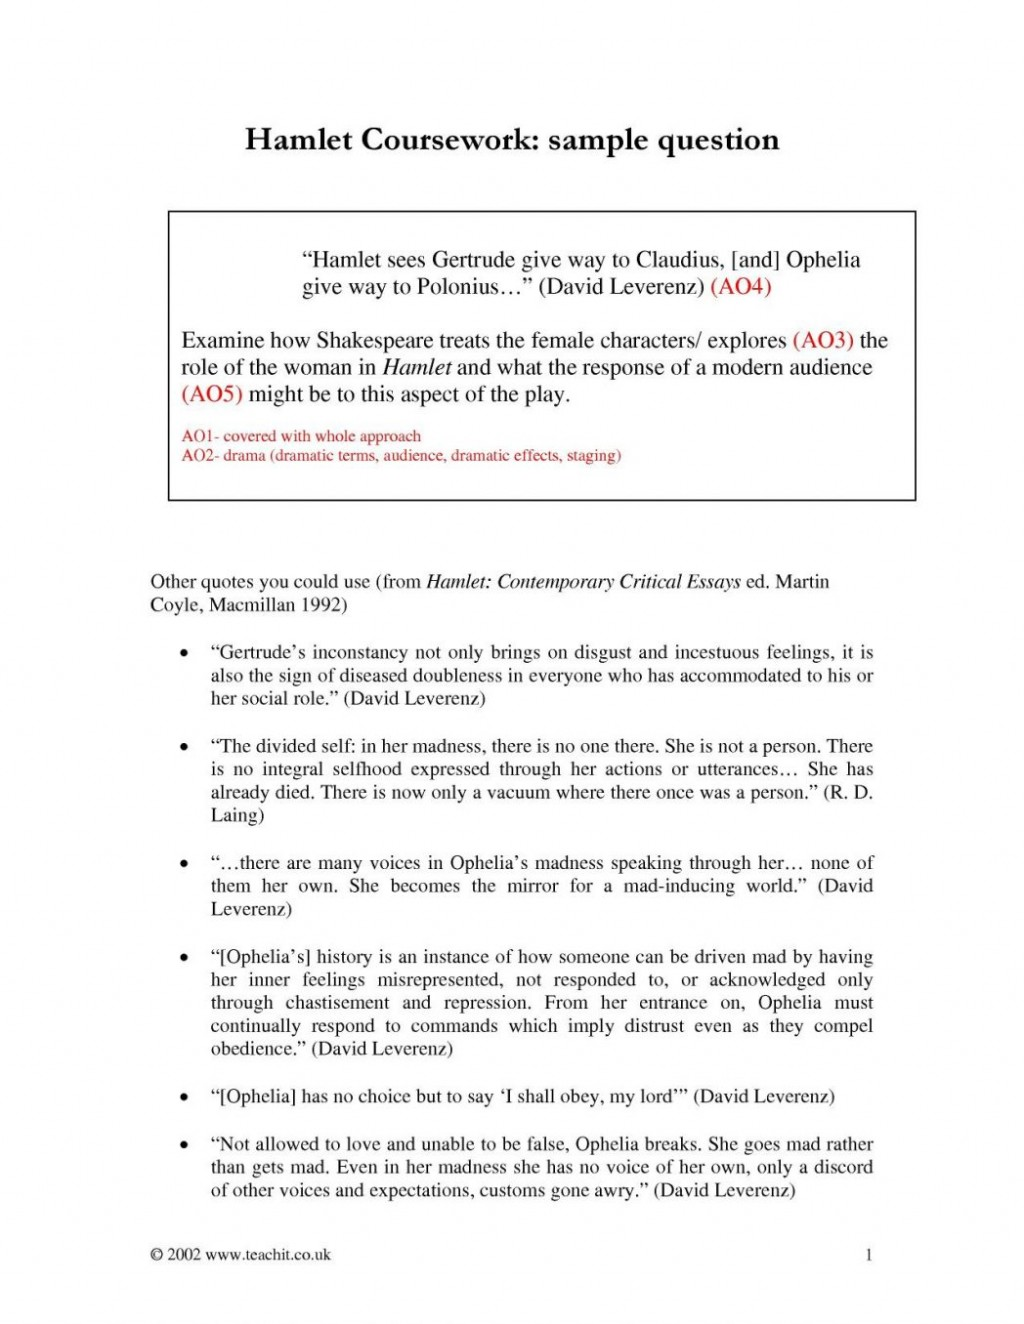 009 Essay Example Hamlet On Revenge Topics Outline 1048x1356 Stupendous Madness Theme Large